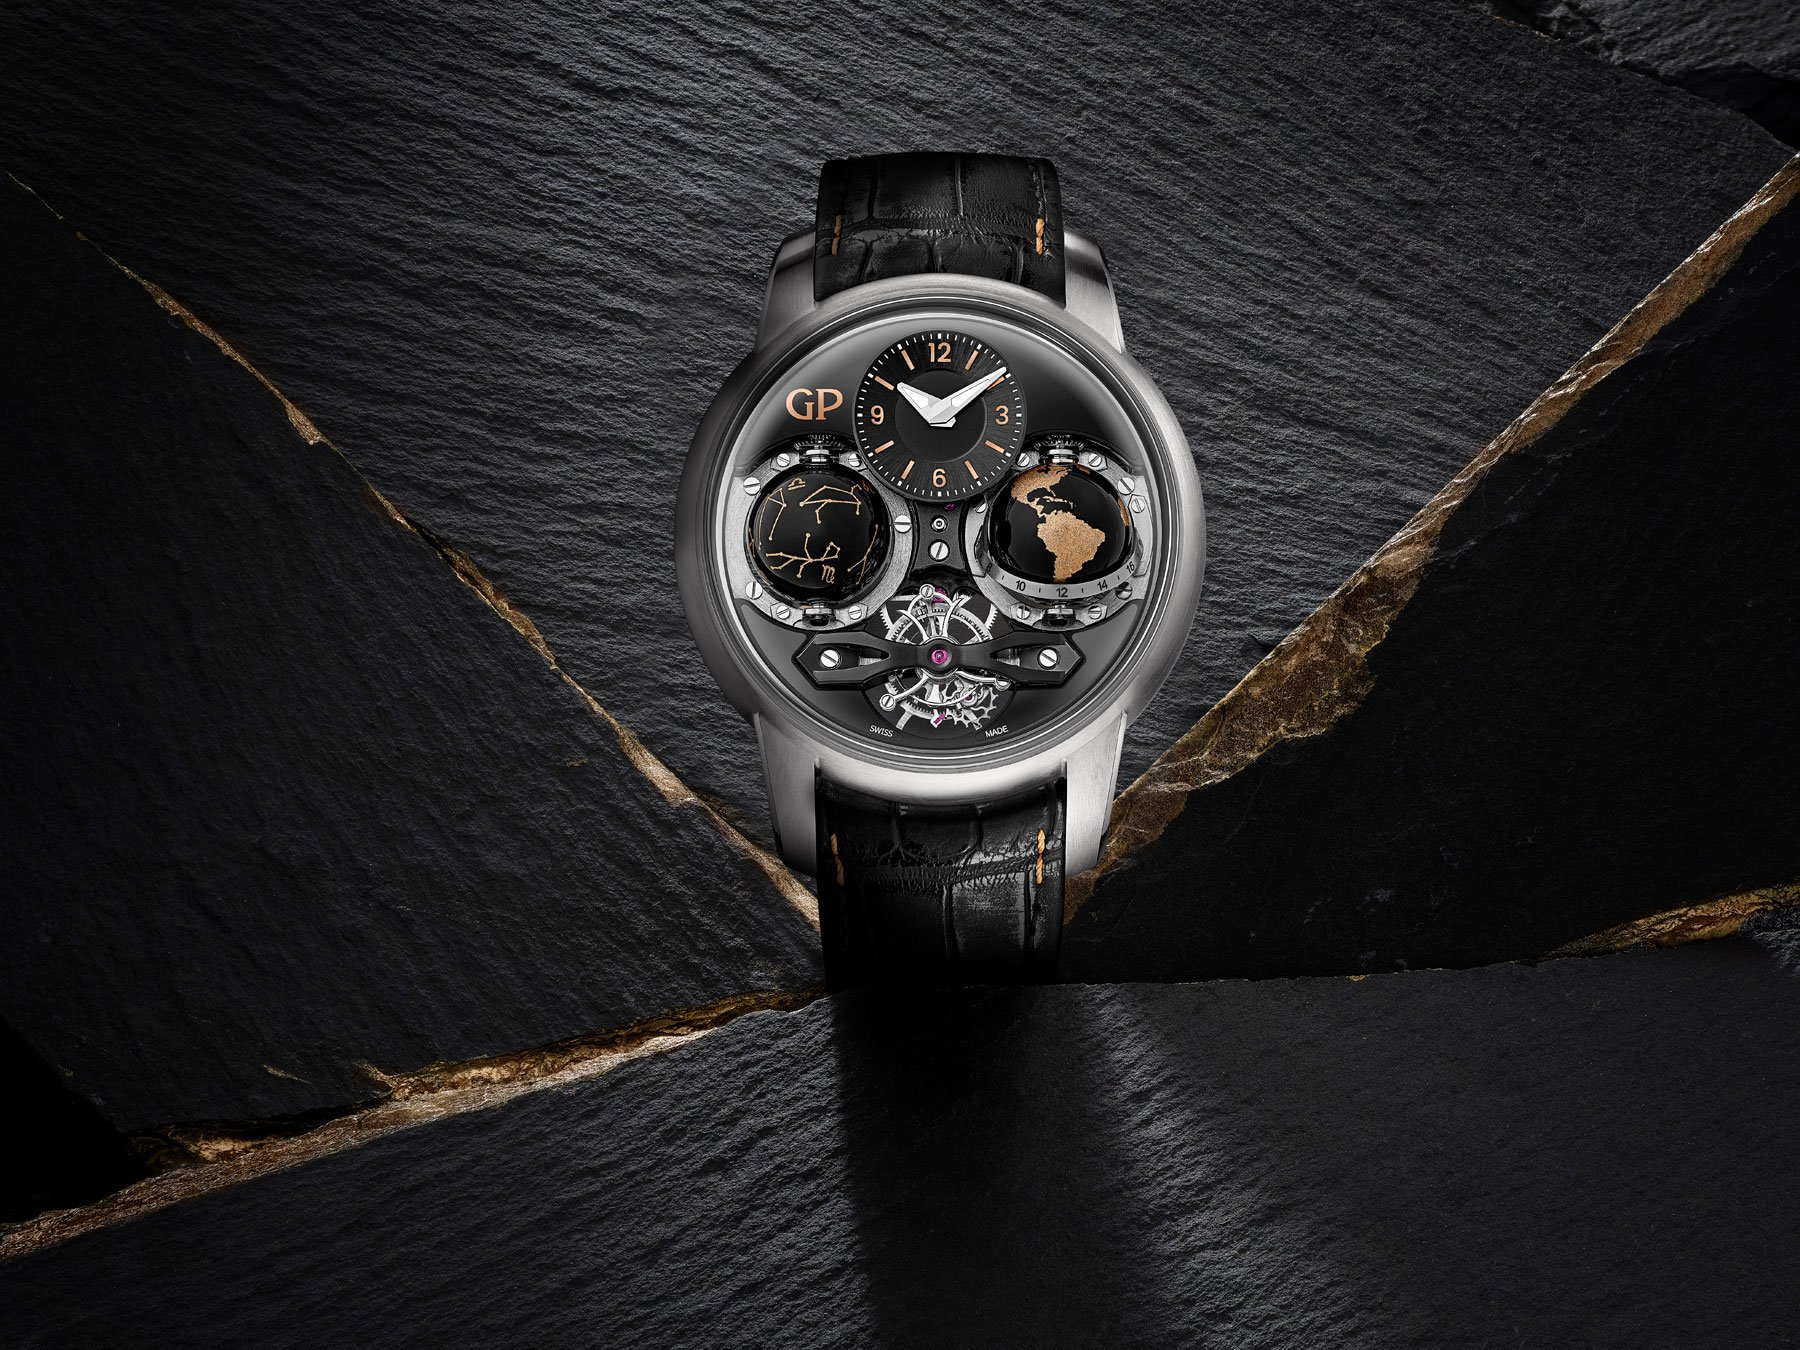 The cosmic attraction of watchmaking